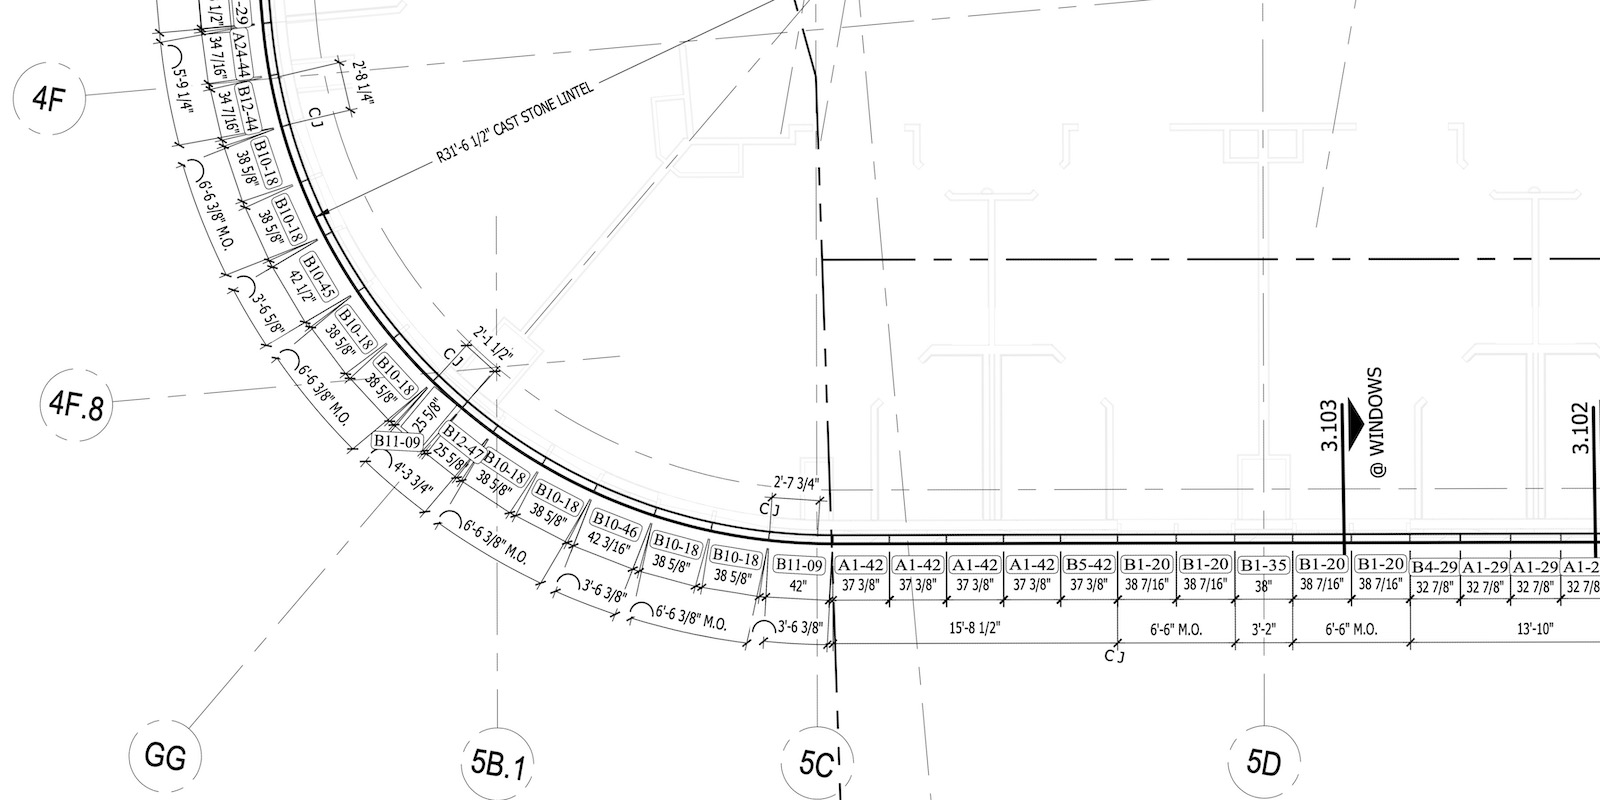 Settings Plan Section - Cast Stone Fitting Together for Curved Band on the Building Exterior